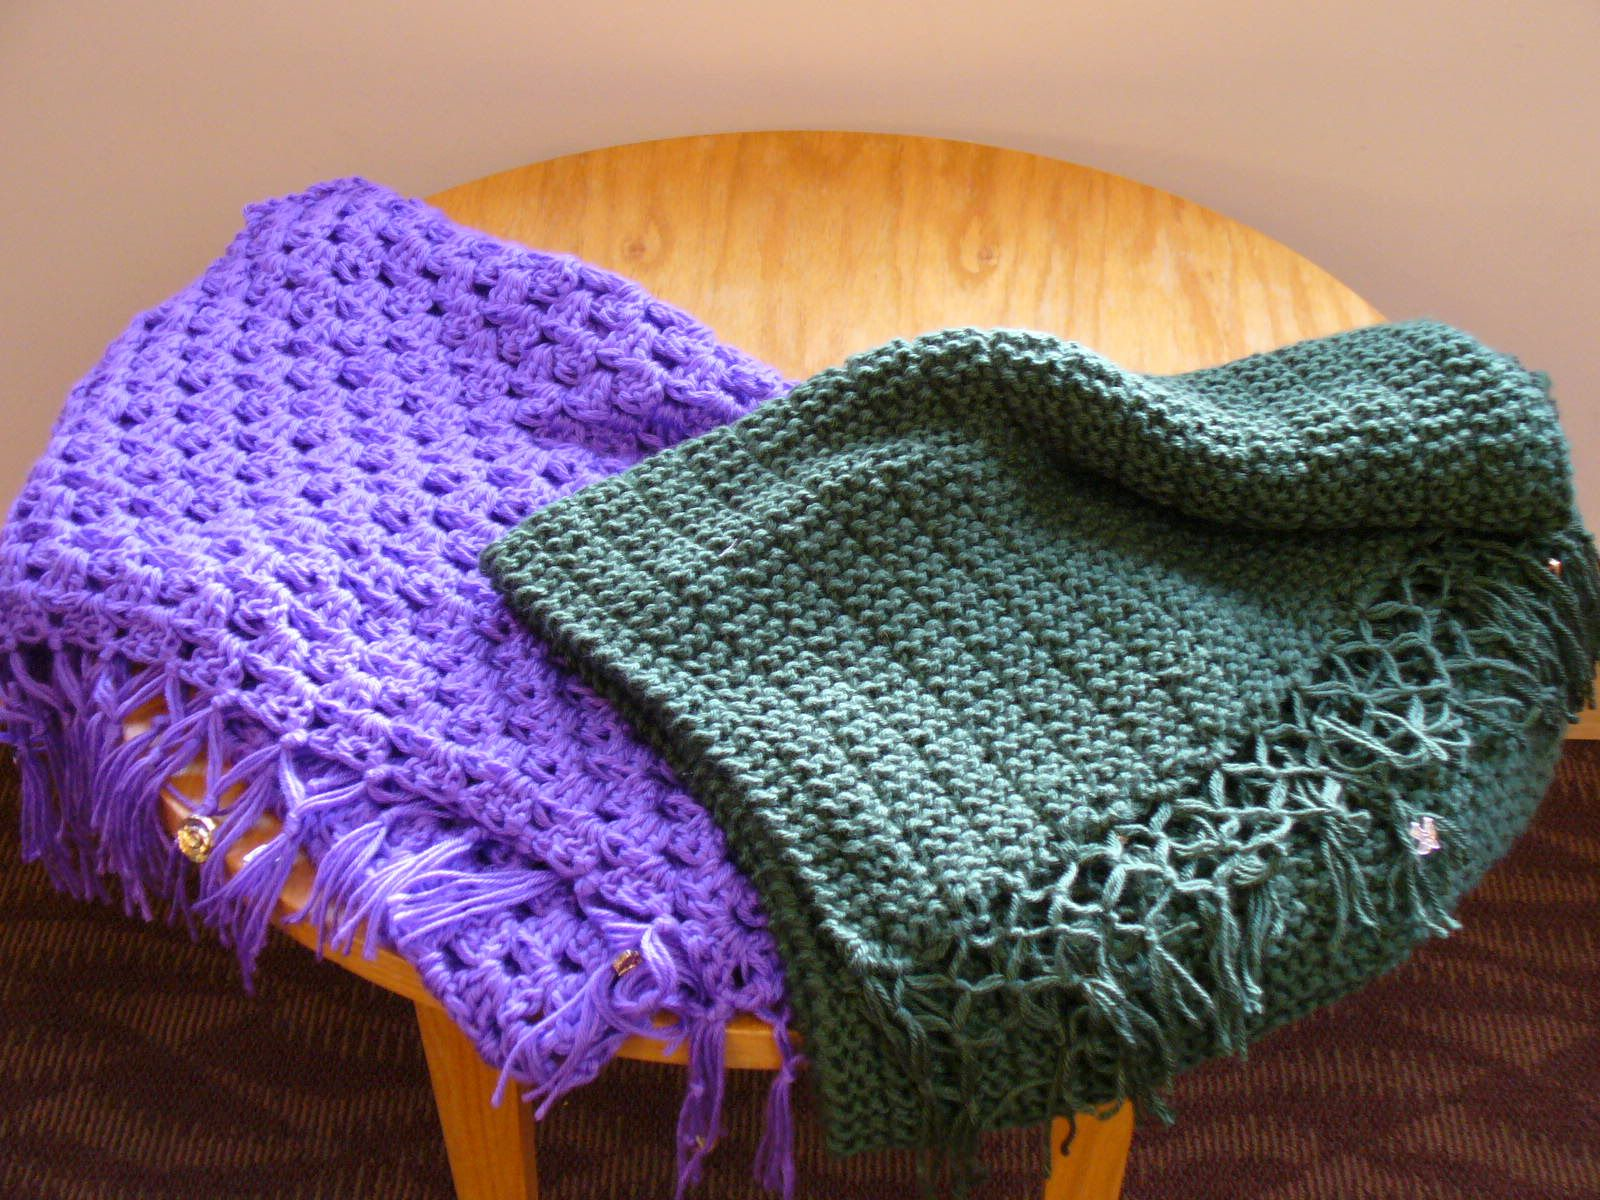 Prayer Shawl Patterns Free | Healing Prayer Shawl-Crochet Pattern ...